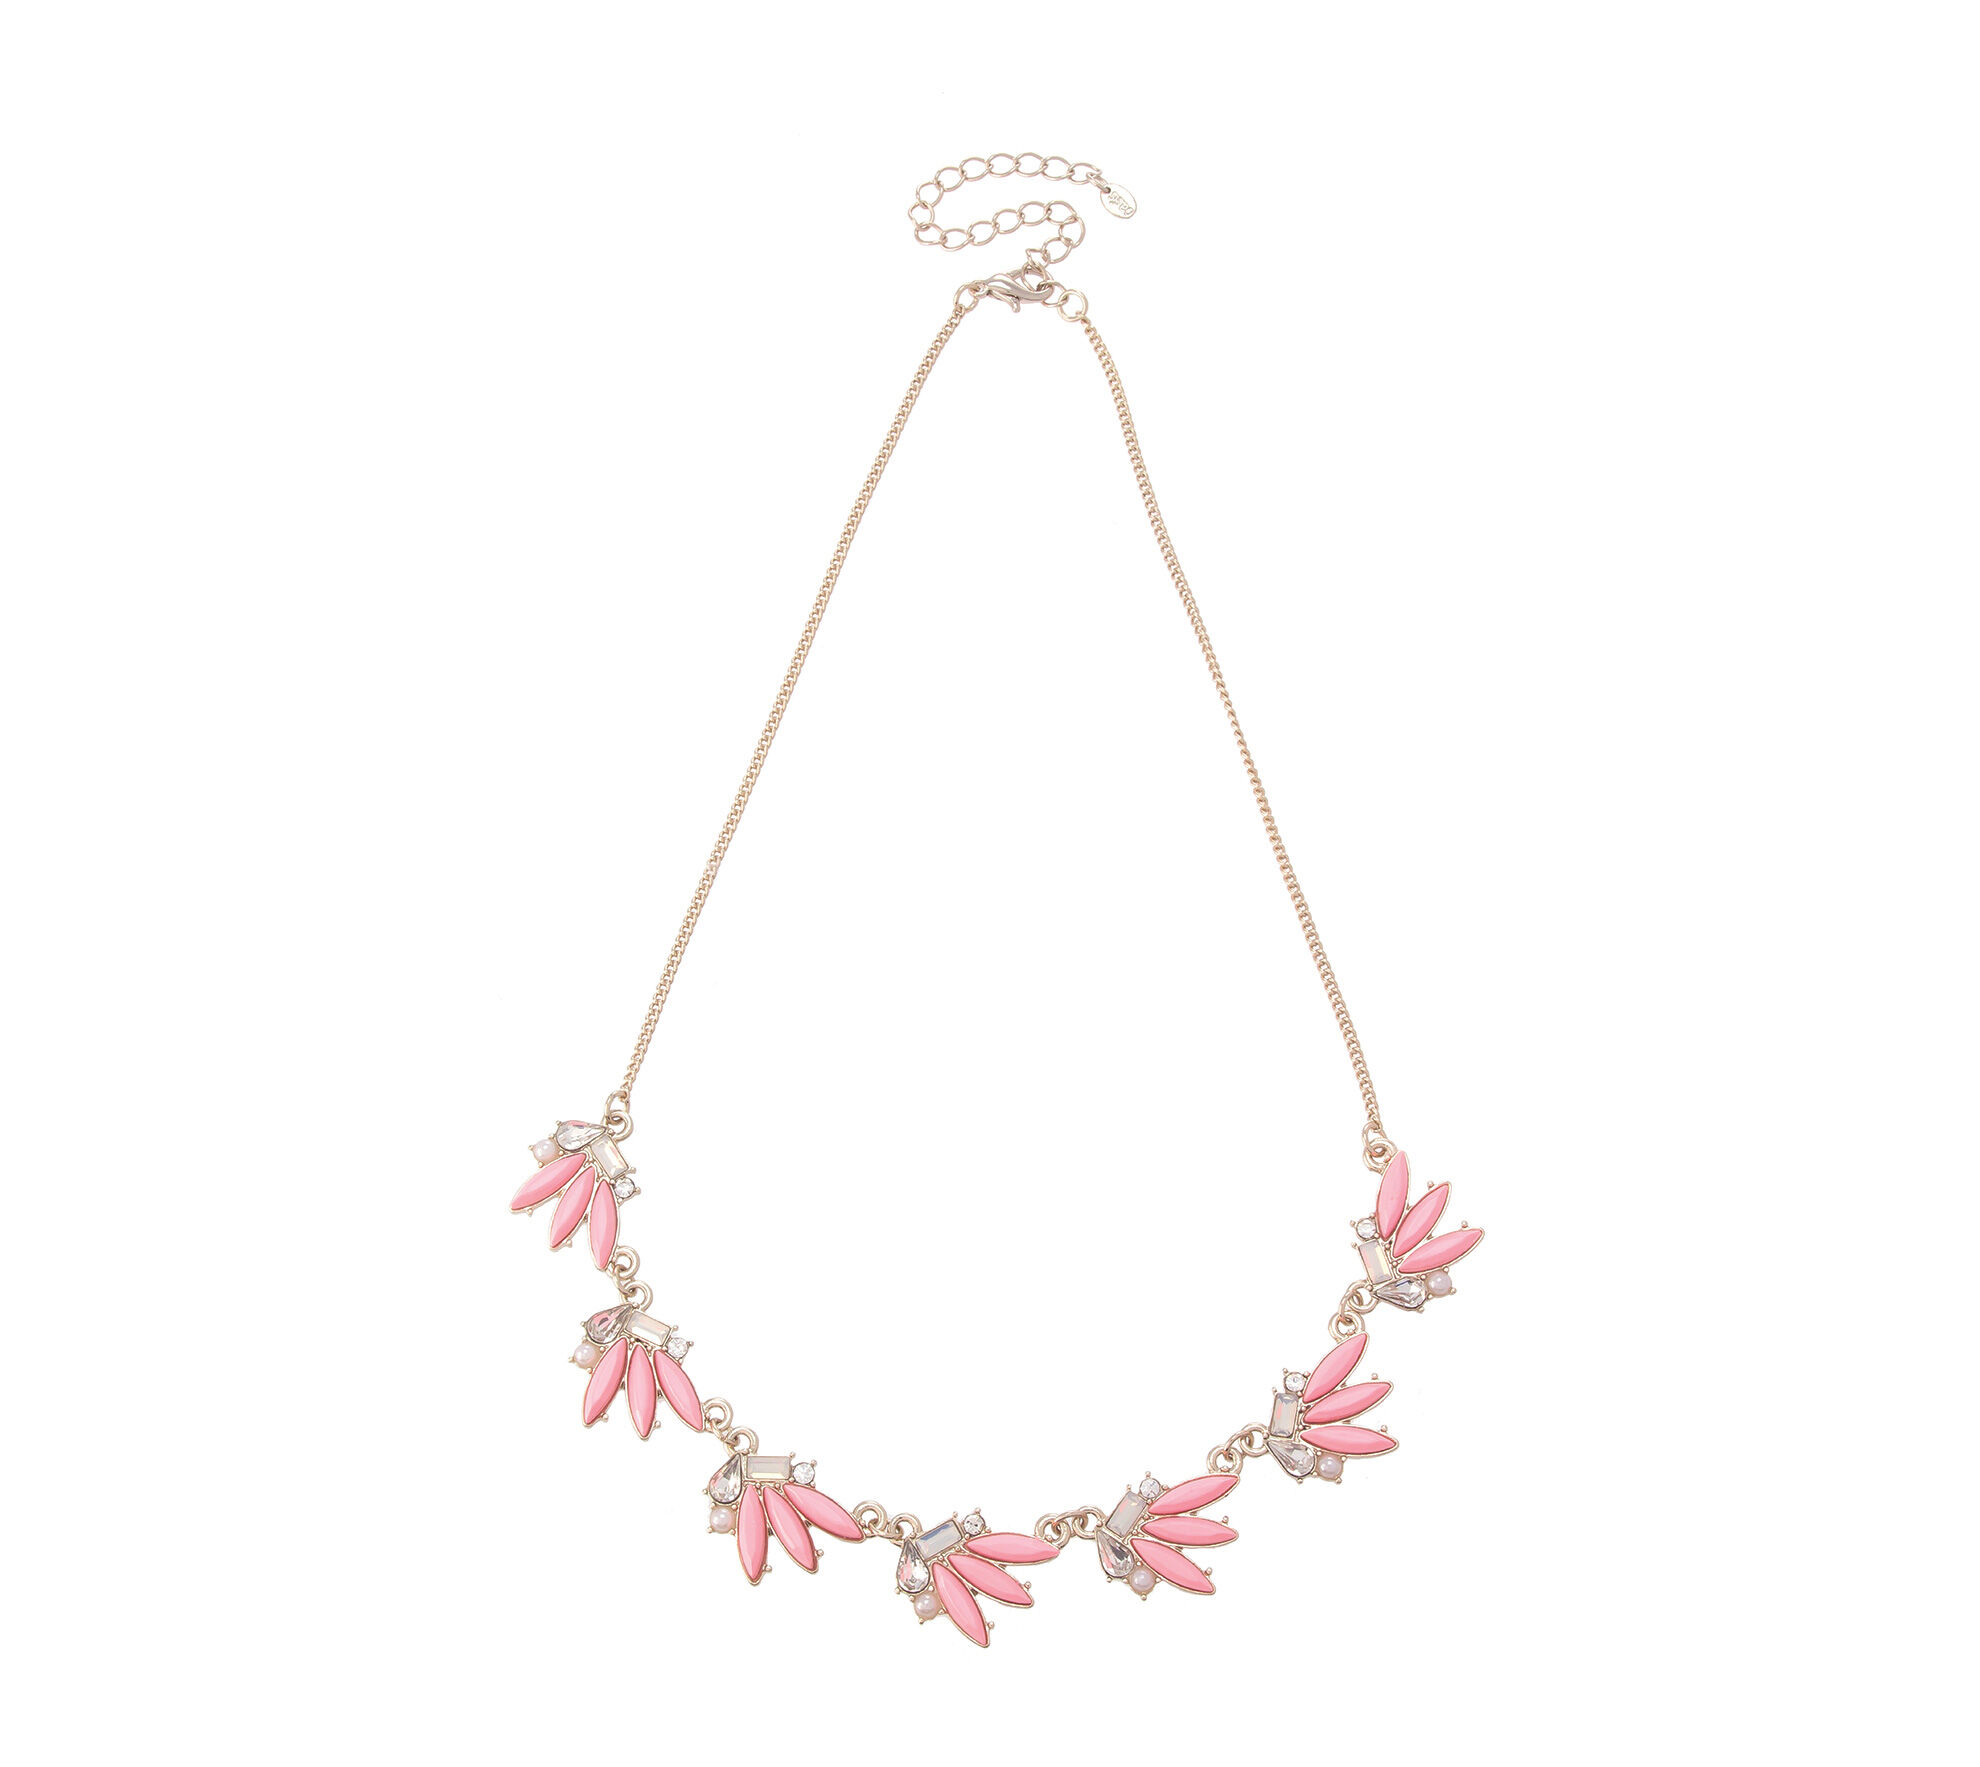 Oasis, NEON STONE NECKLACE Neon Pink 0